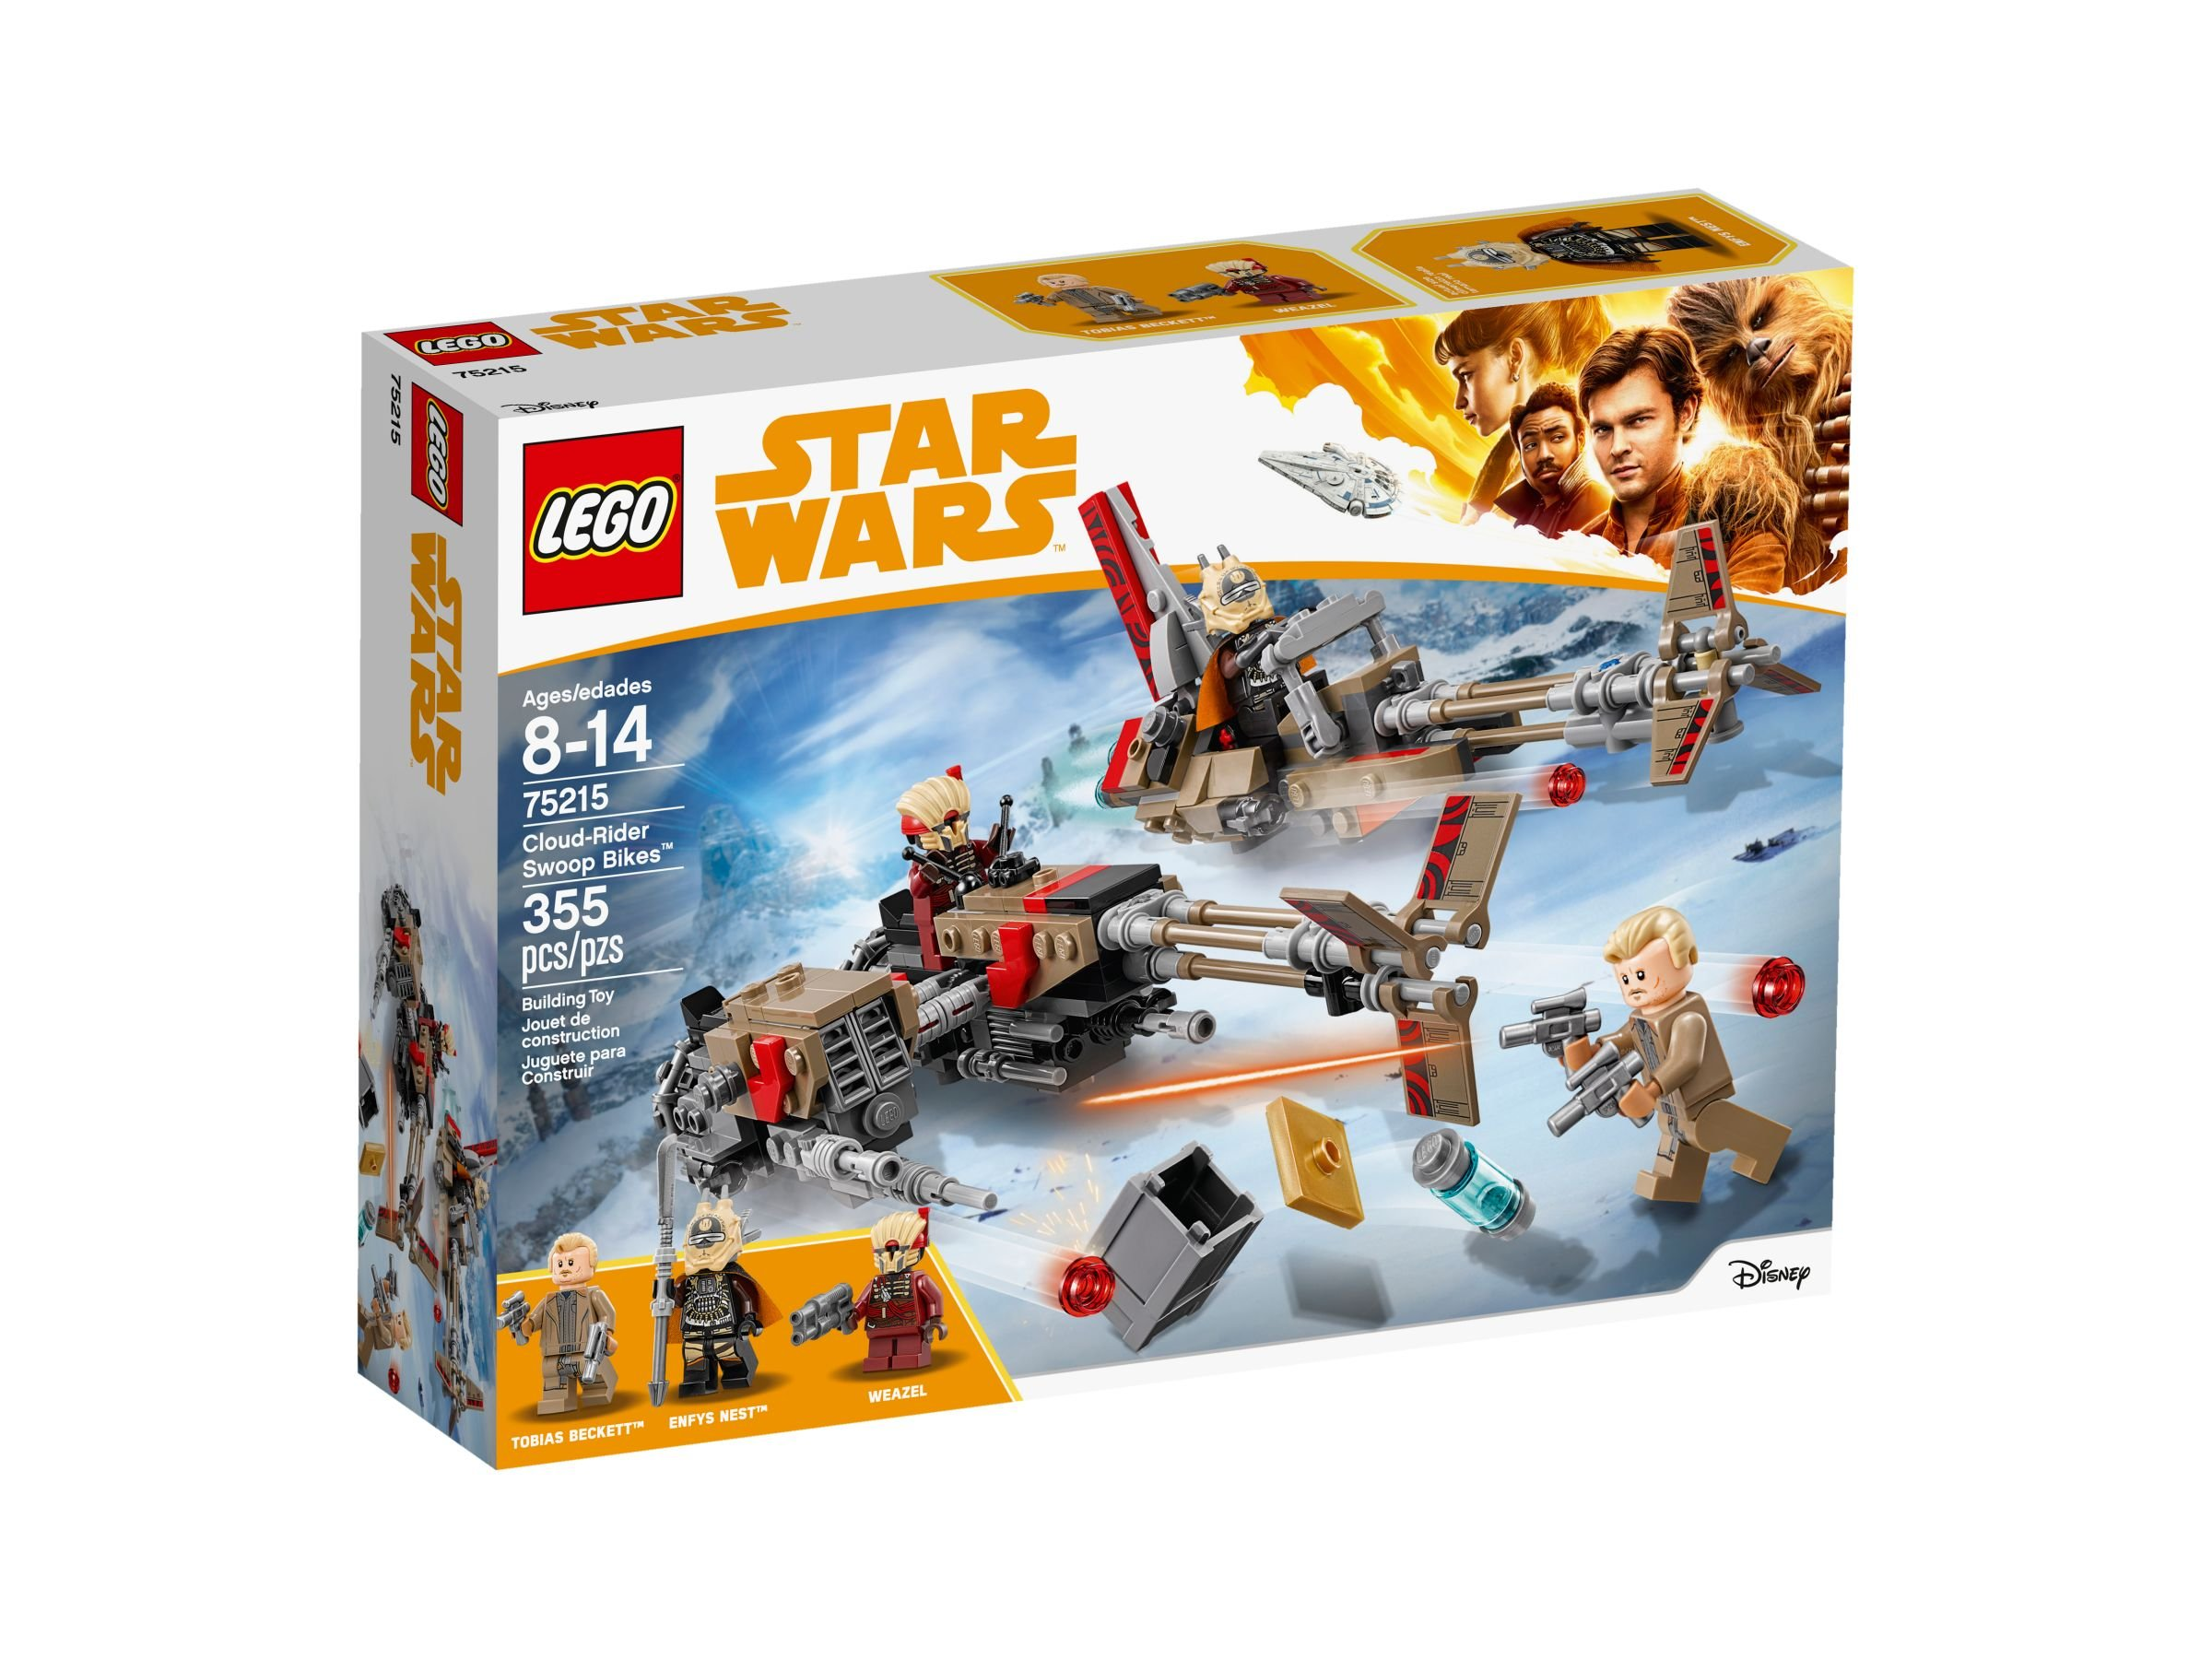 LEGO Star Wars 75215 Cloud-Rider Swoop Bikes™ LEGO_75215_alt1.jpg